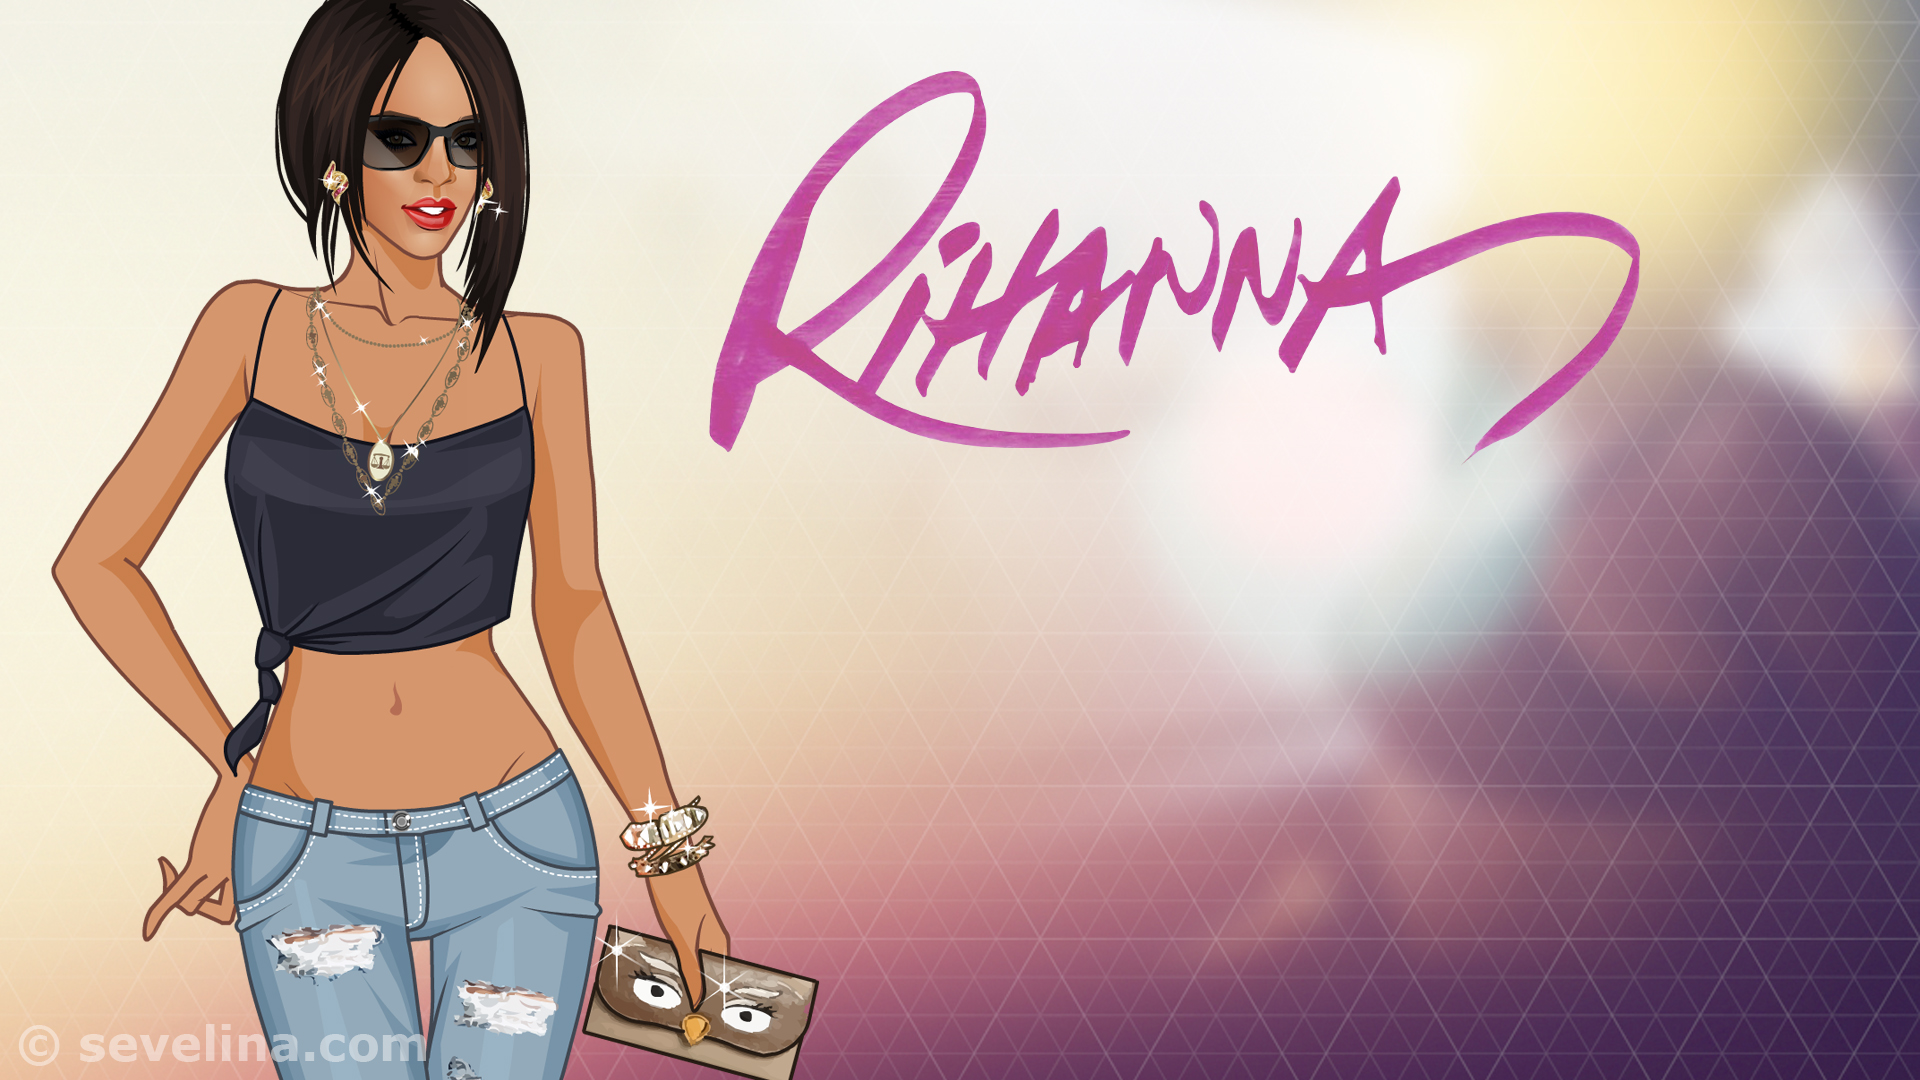 rihanna-wallpapers-2014-sevelina-dress-up-games